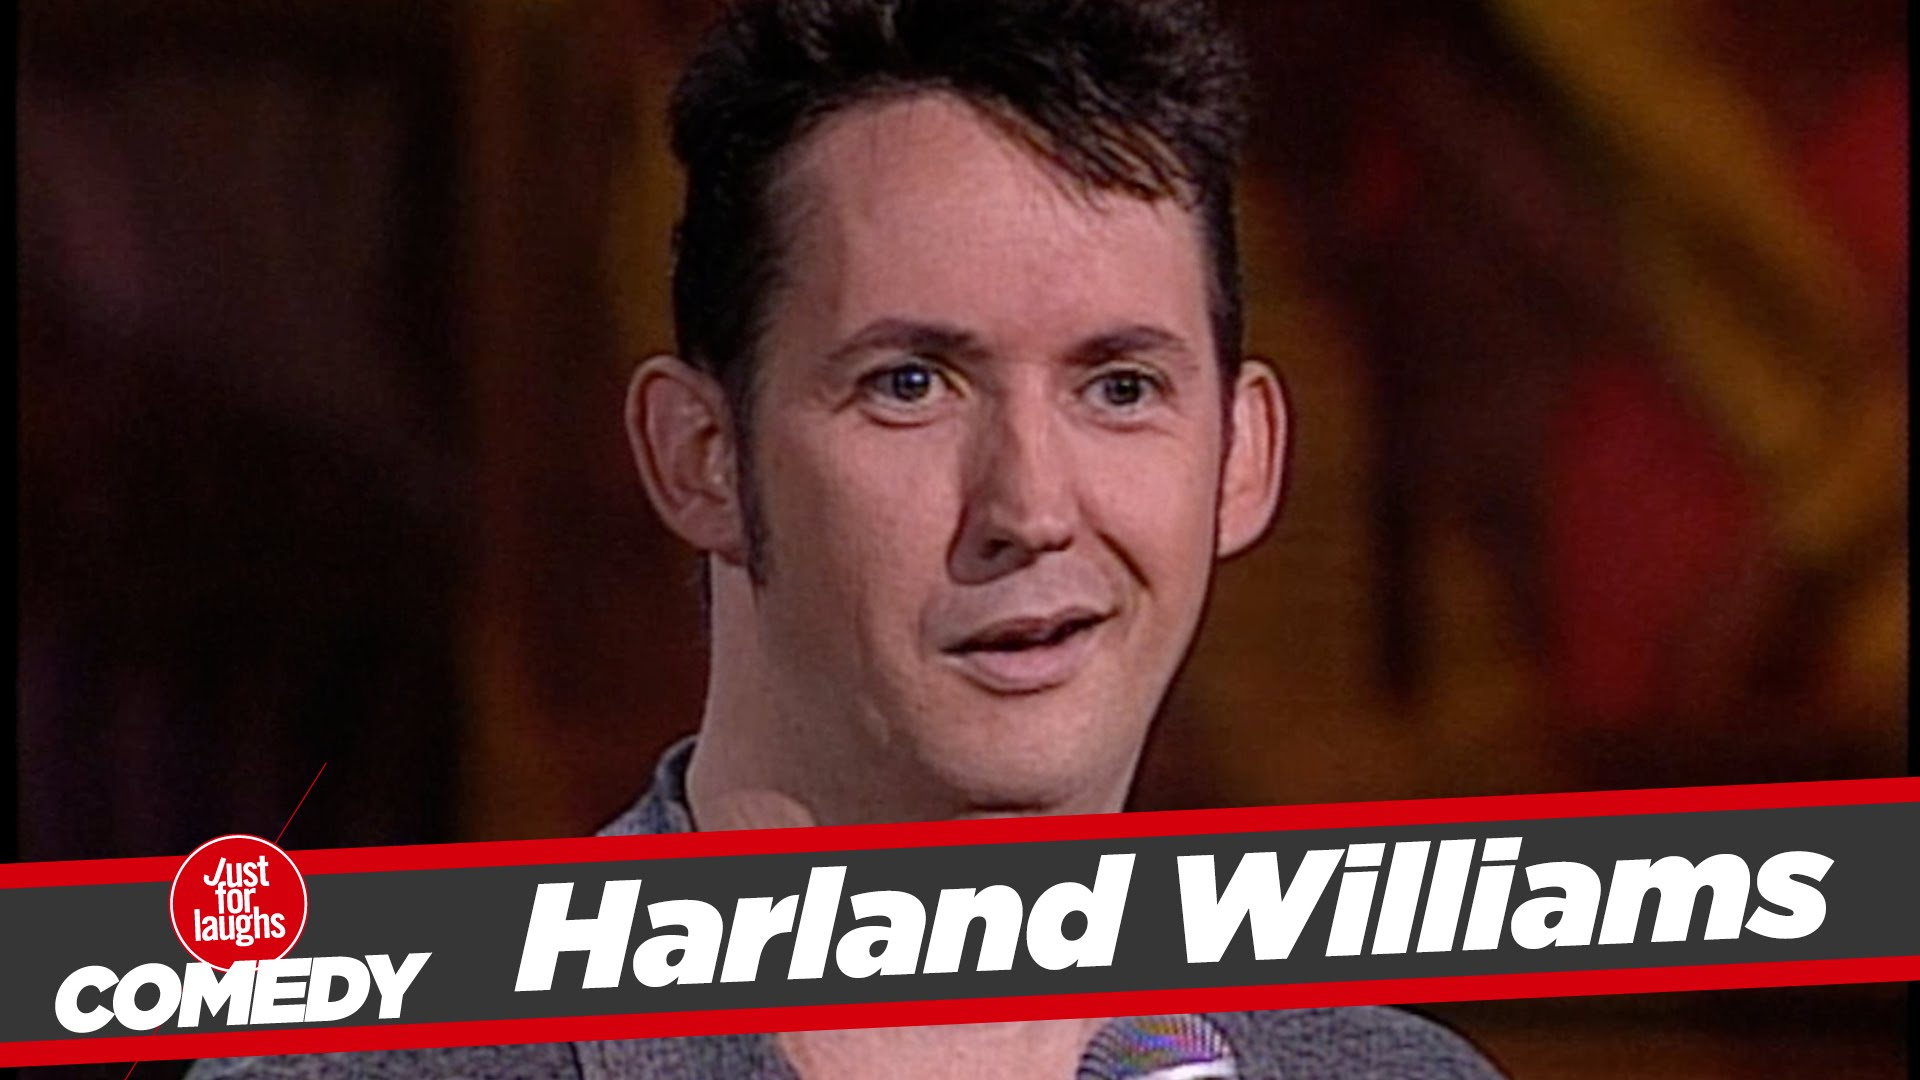 Harland Williams Stand Up - Whatsapp Forwards, Jokes ...